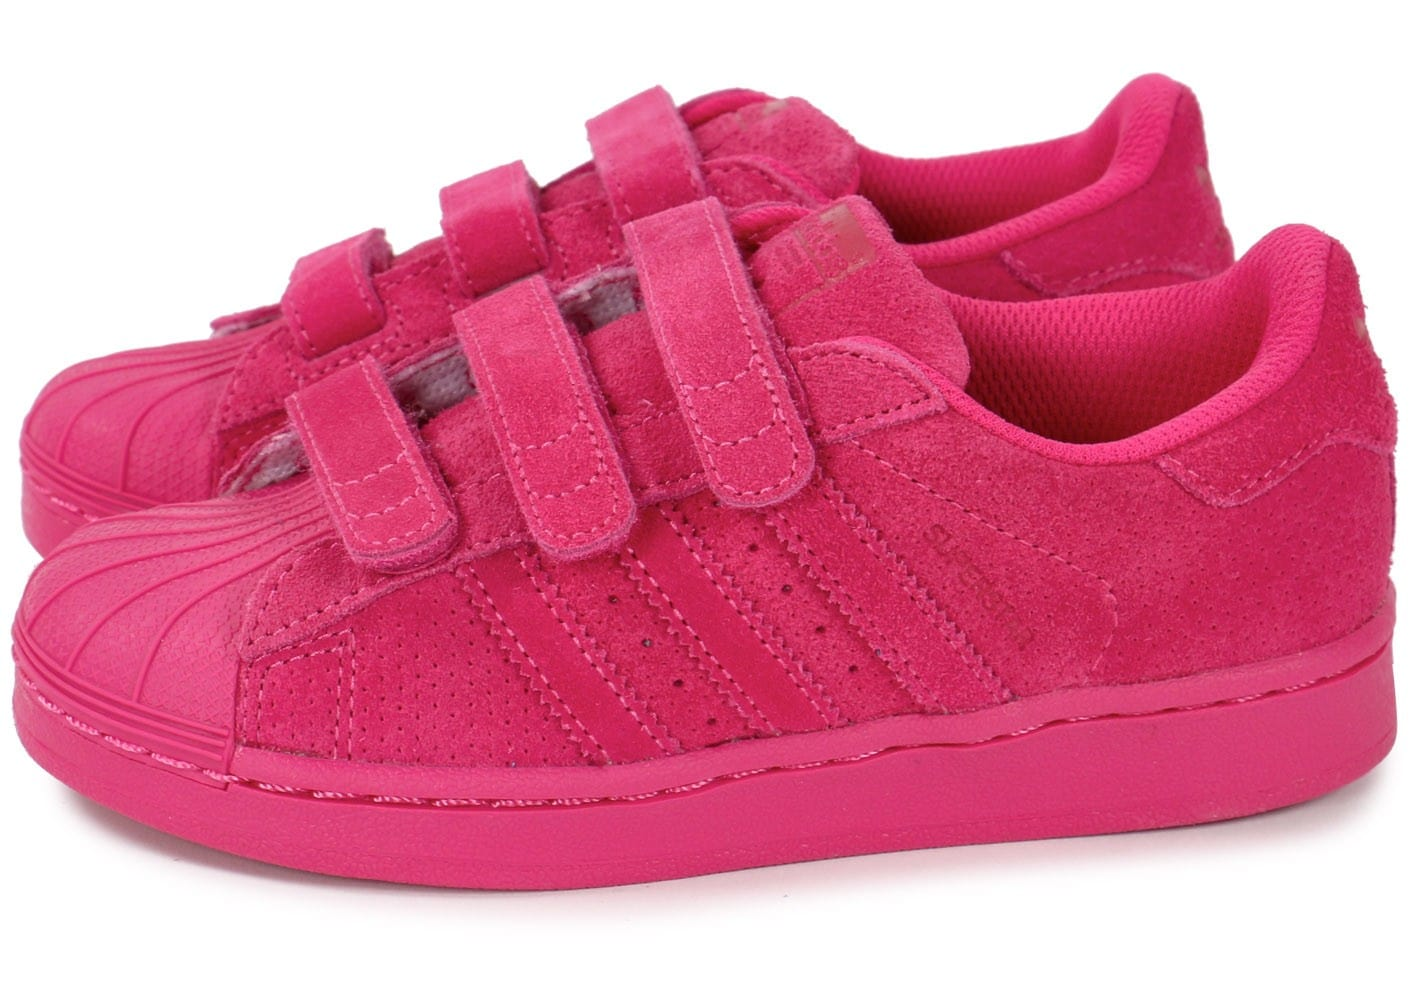 Chaussures Superstar Enfant Chausport Multicolor Adidas Rose bgvf67Yy